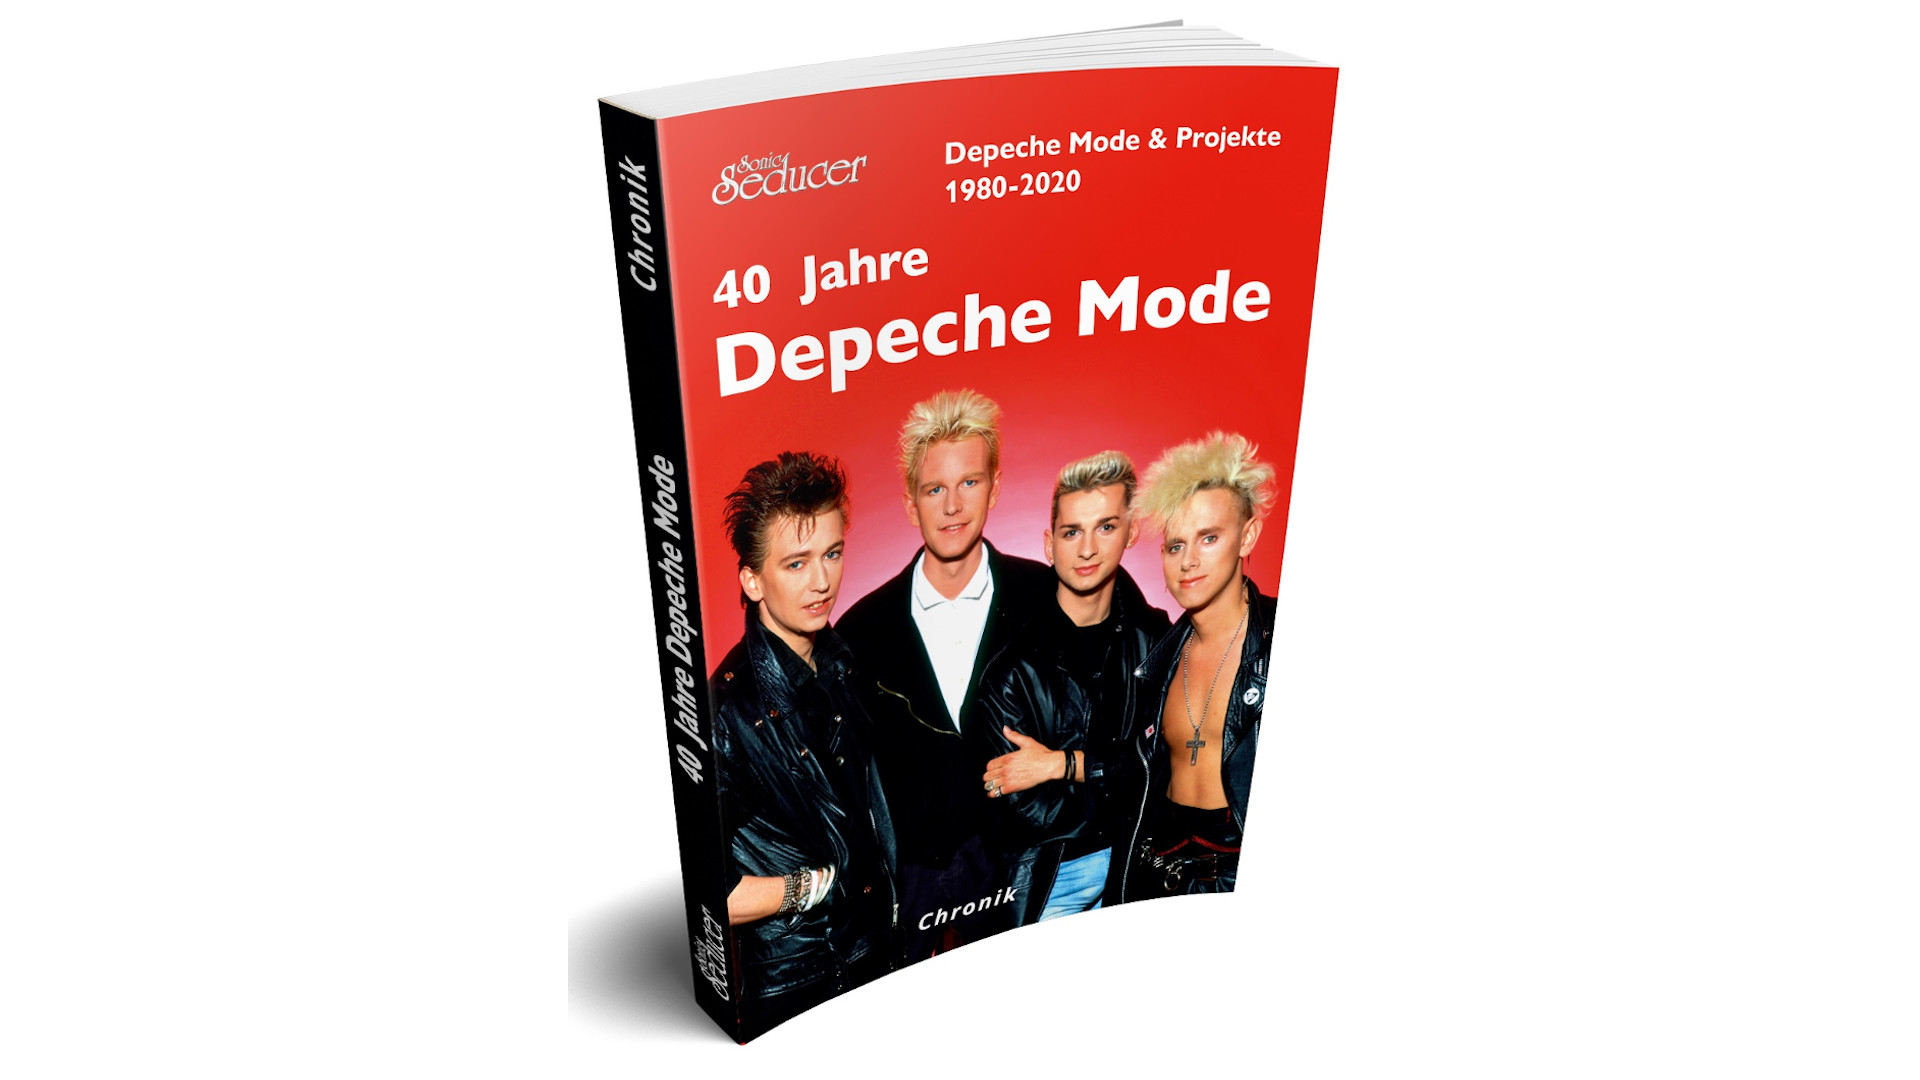 depeche mode chronik titelbild